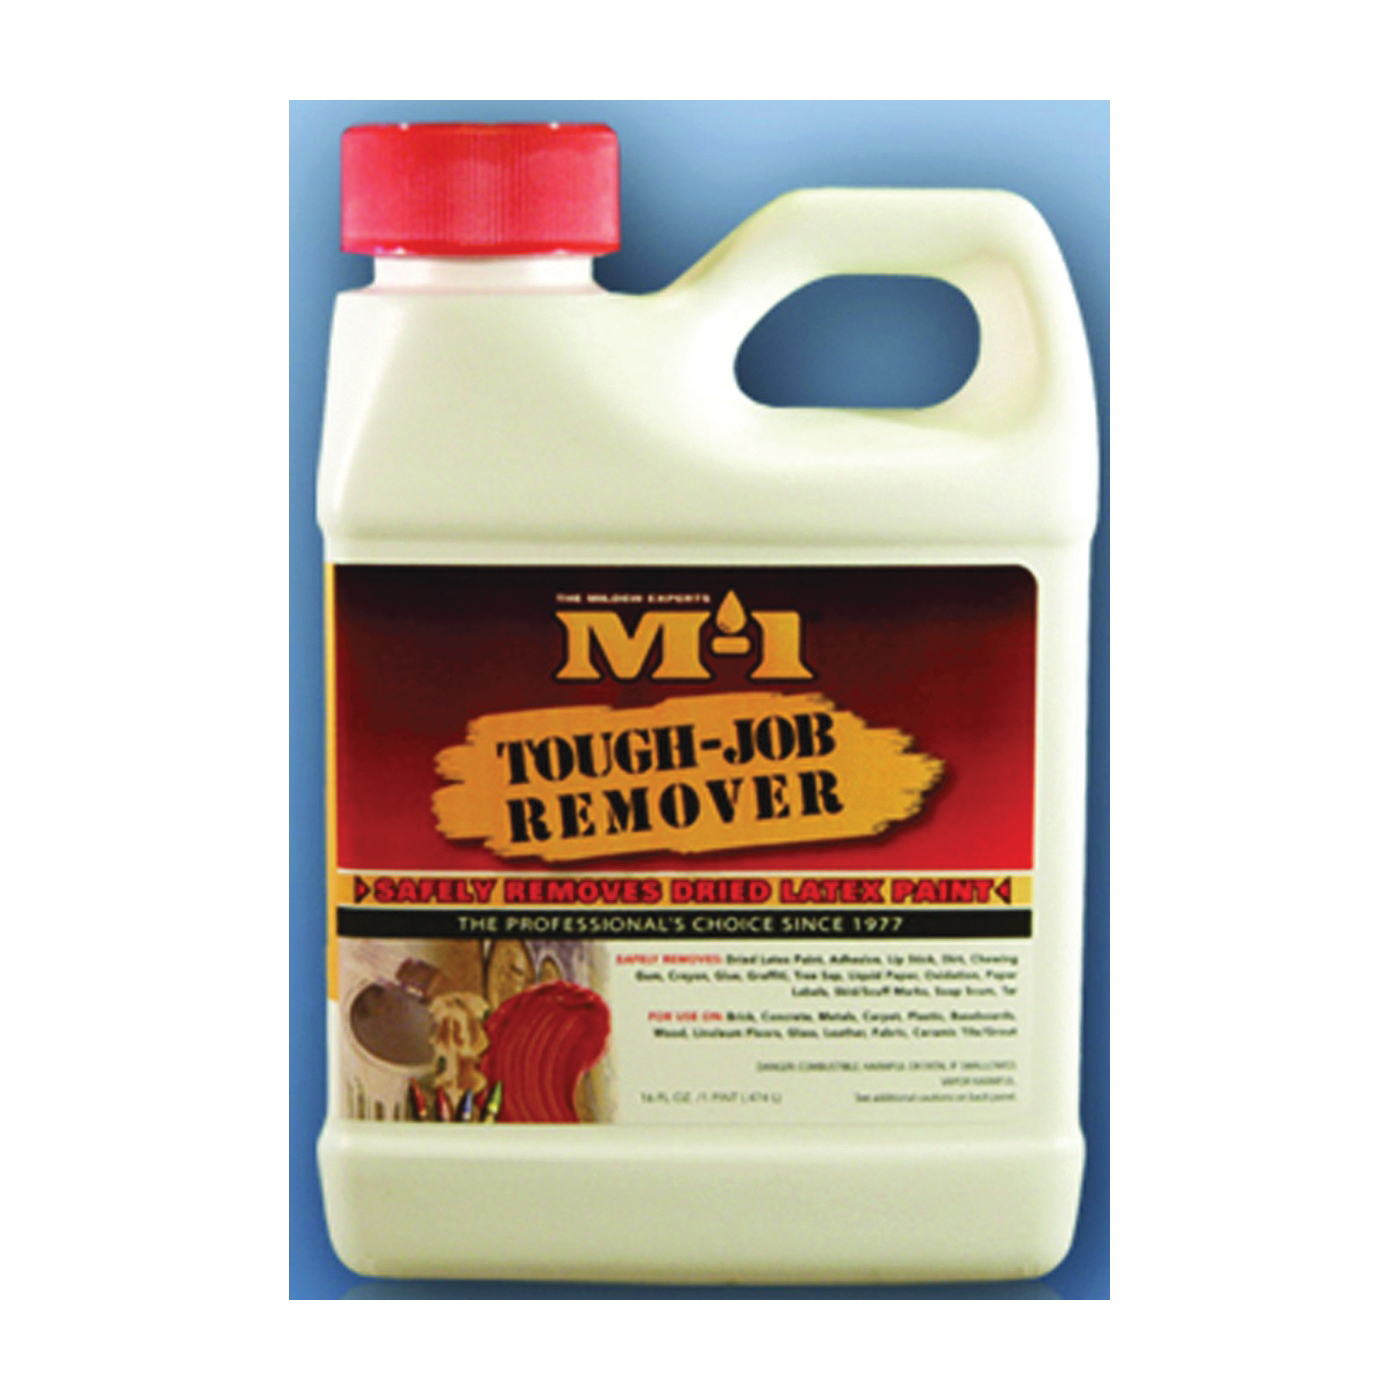 Picture of M-1 TJR1P Cleaner, 1 pt Package, Bottle, Pungent Aromatic Hydrocarbon